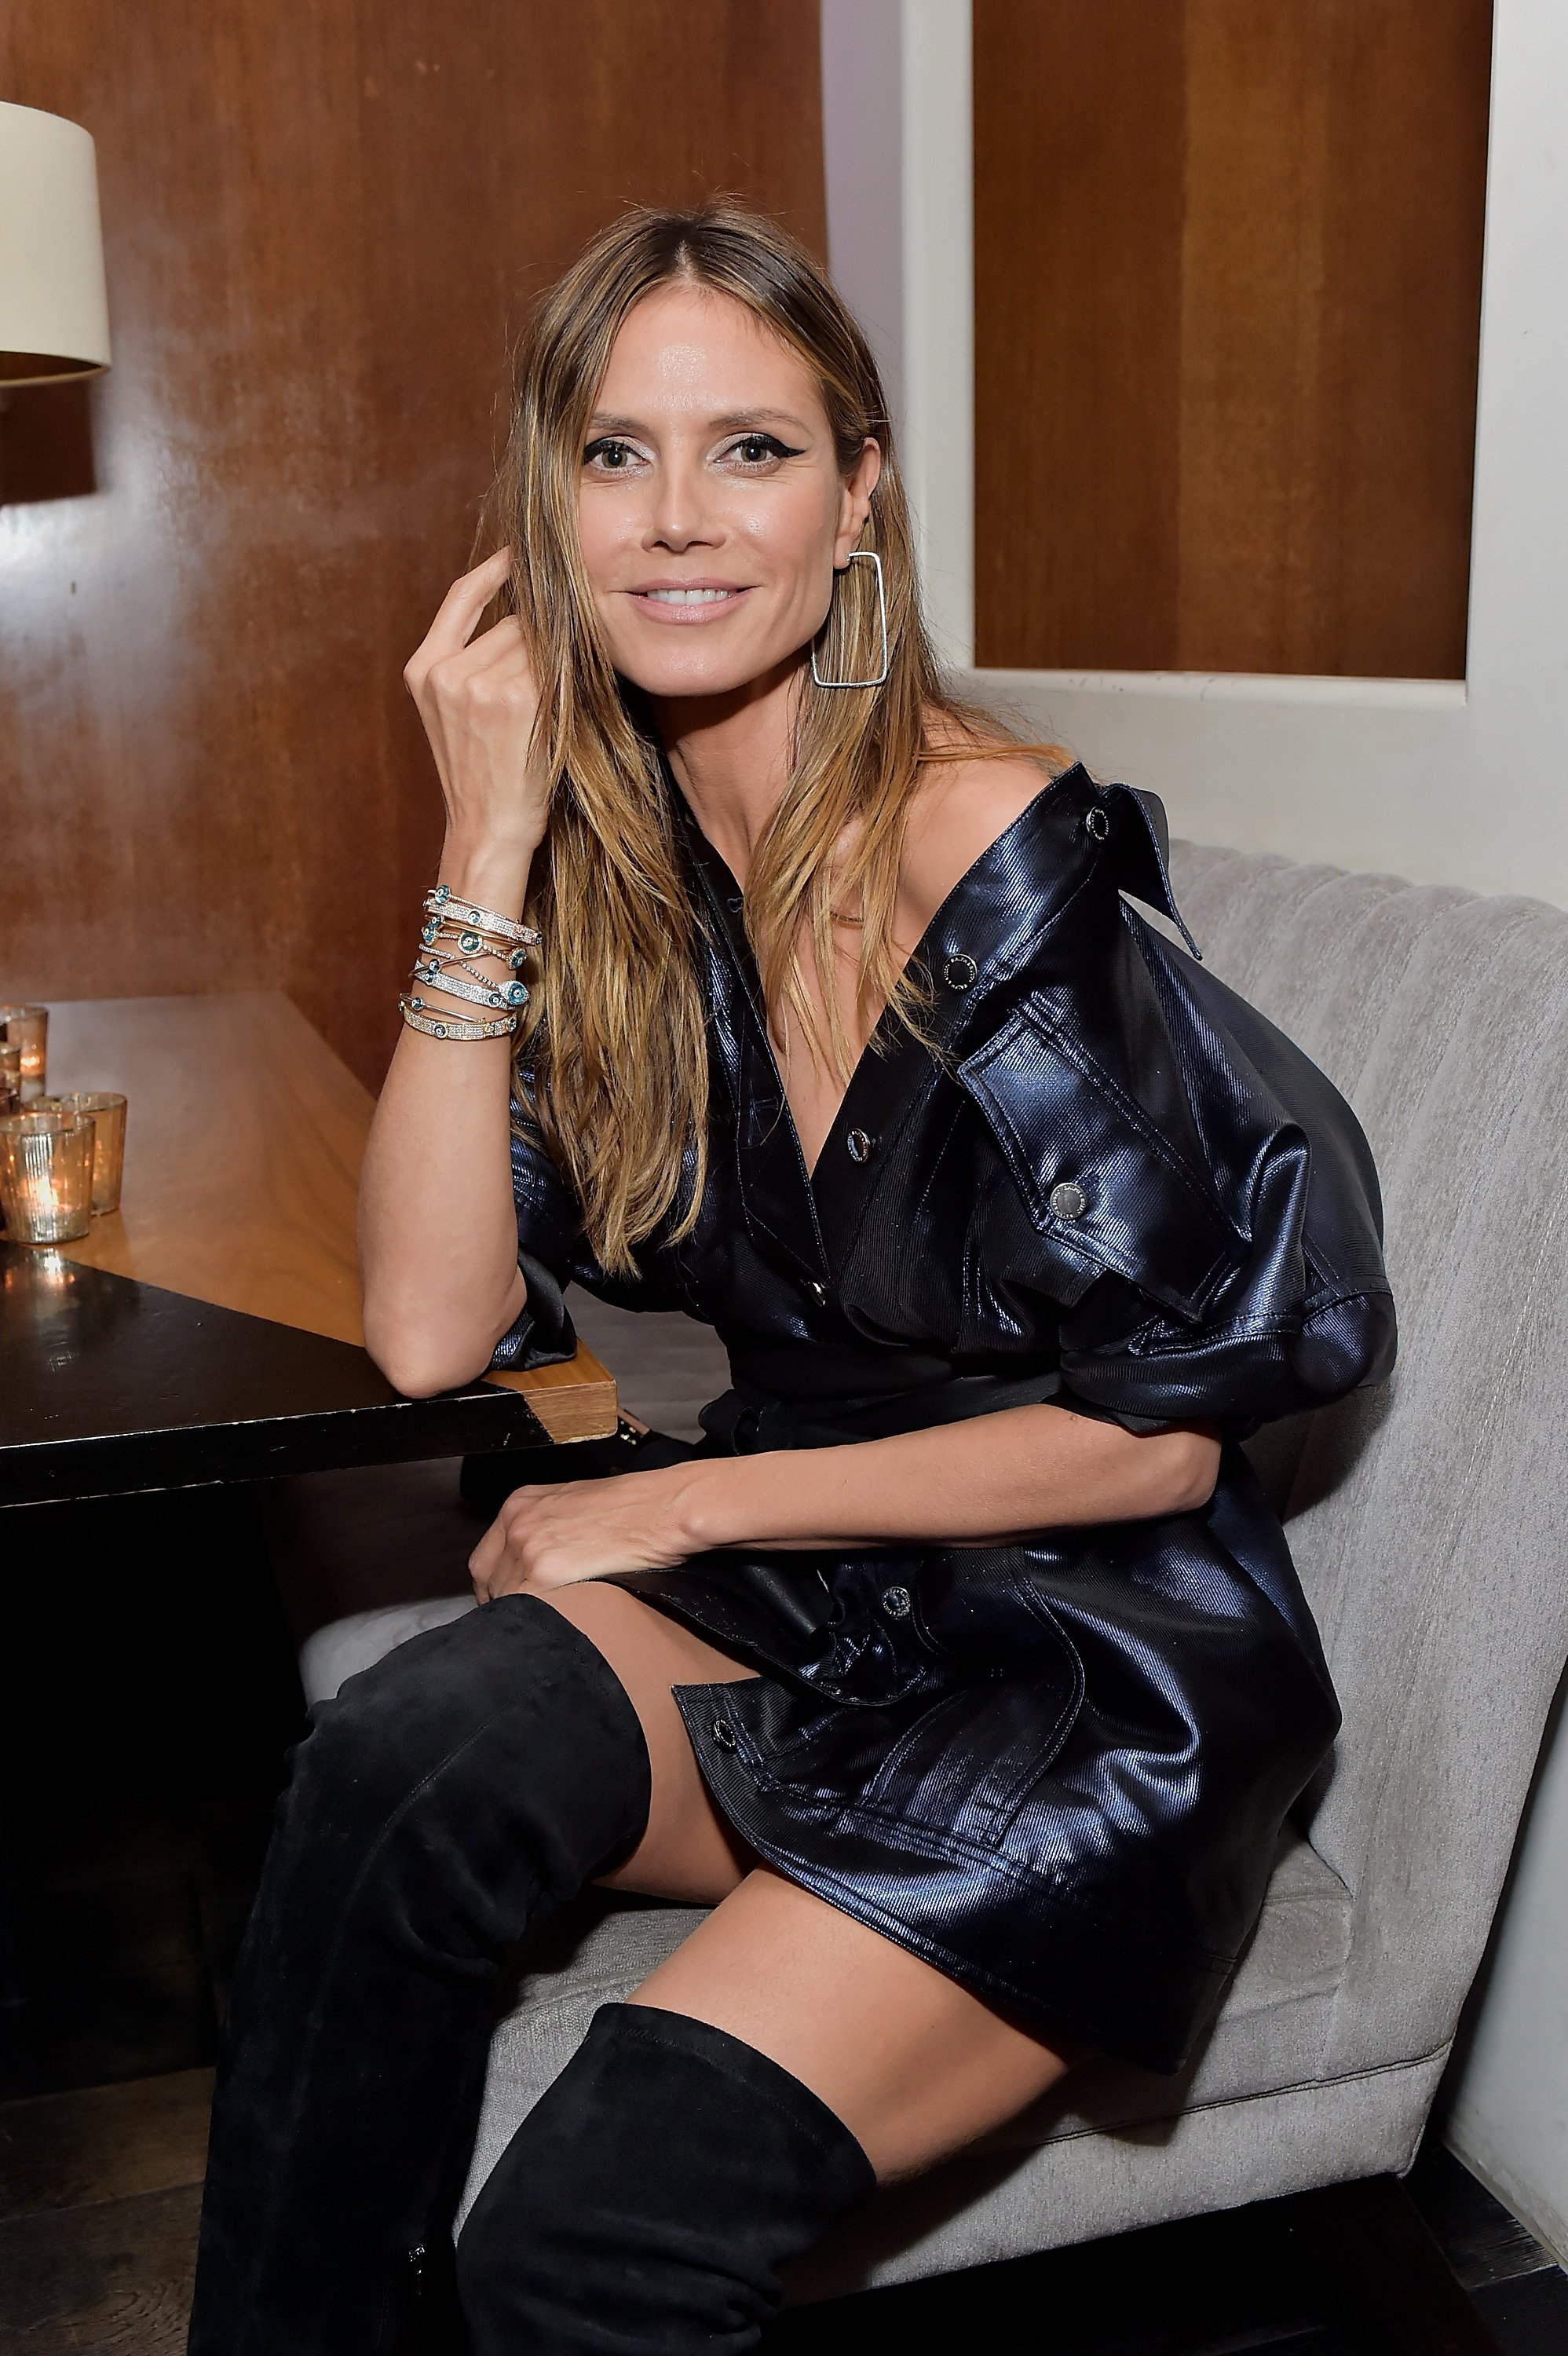 Heidi Klum attending the launching of Lorraine Schwartz's The Eye Bangle, a new addition to her signature Against Evil Eye Collection at Delilah in West Hollywood, California | Photo: Stefanie Keenan/Getty Images for Lorraine Schwartz